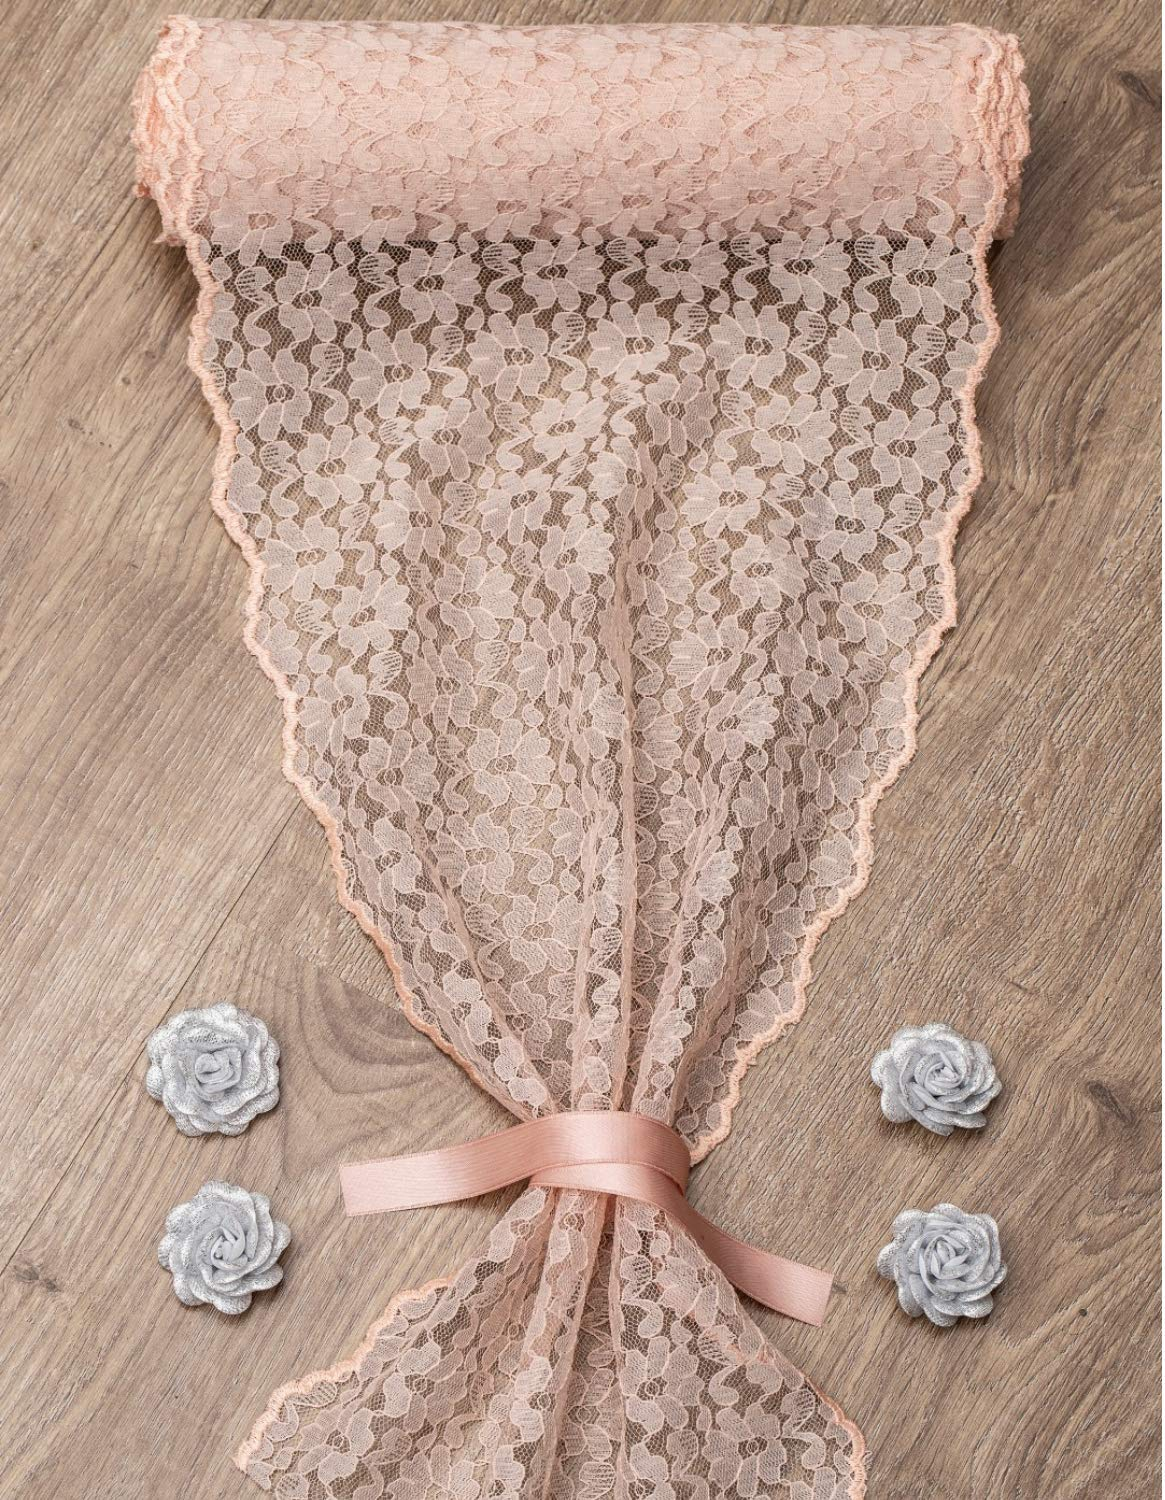 Feminen Textile Lace Table Runner-Boho and Vintage Classy Design- For Restaurants, Hotels and Wedding Reception Decor- 12-inch X 110-inch-Blush Pink